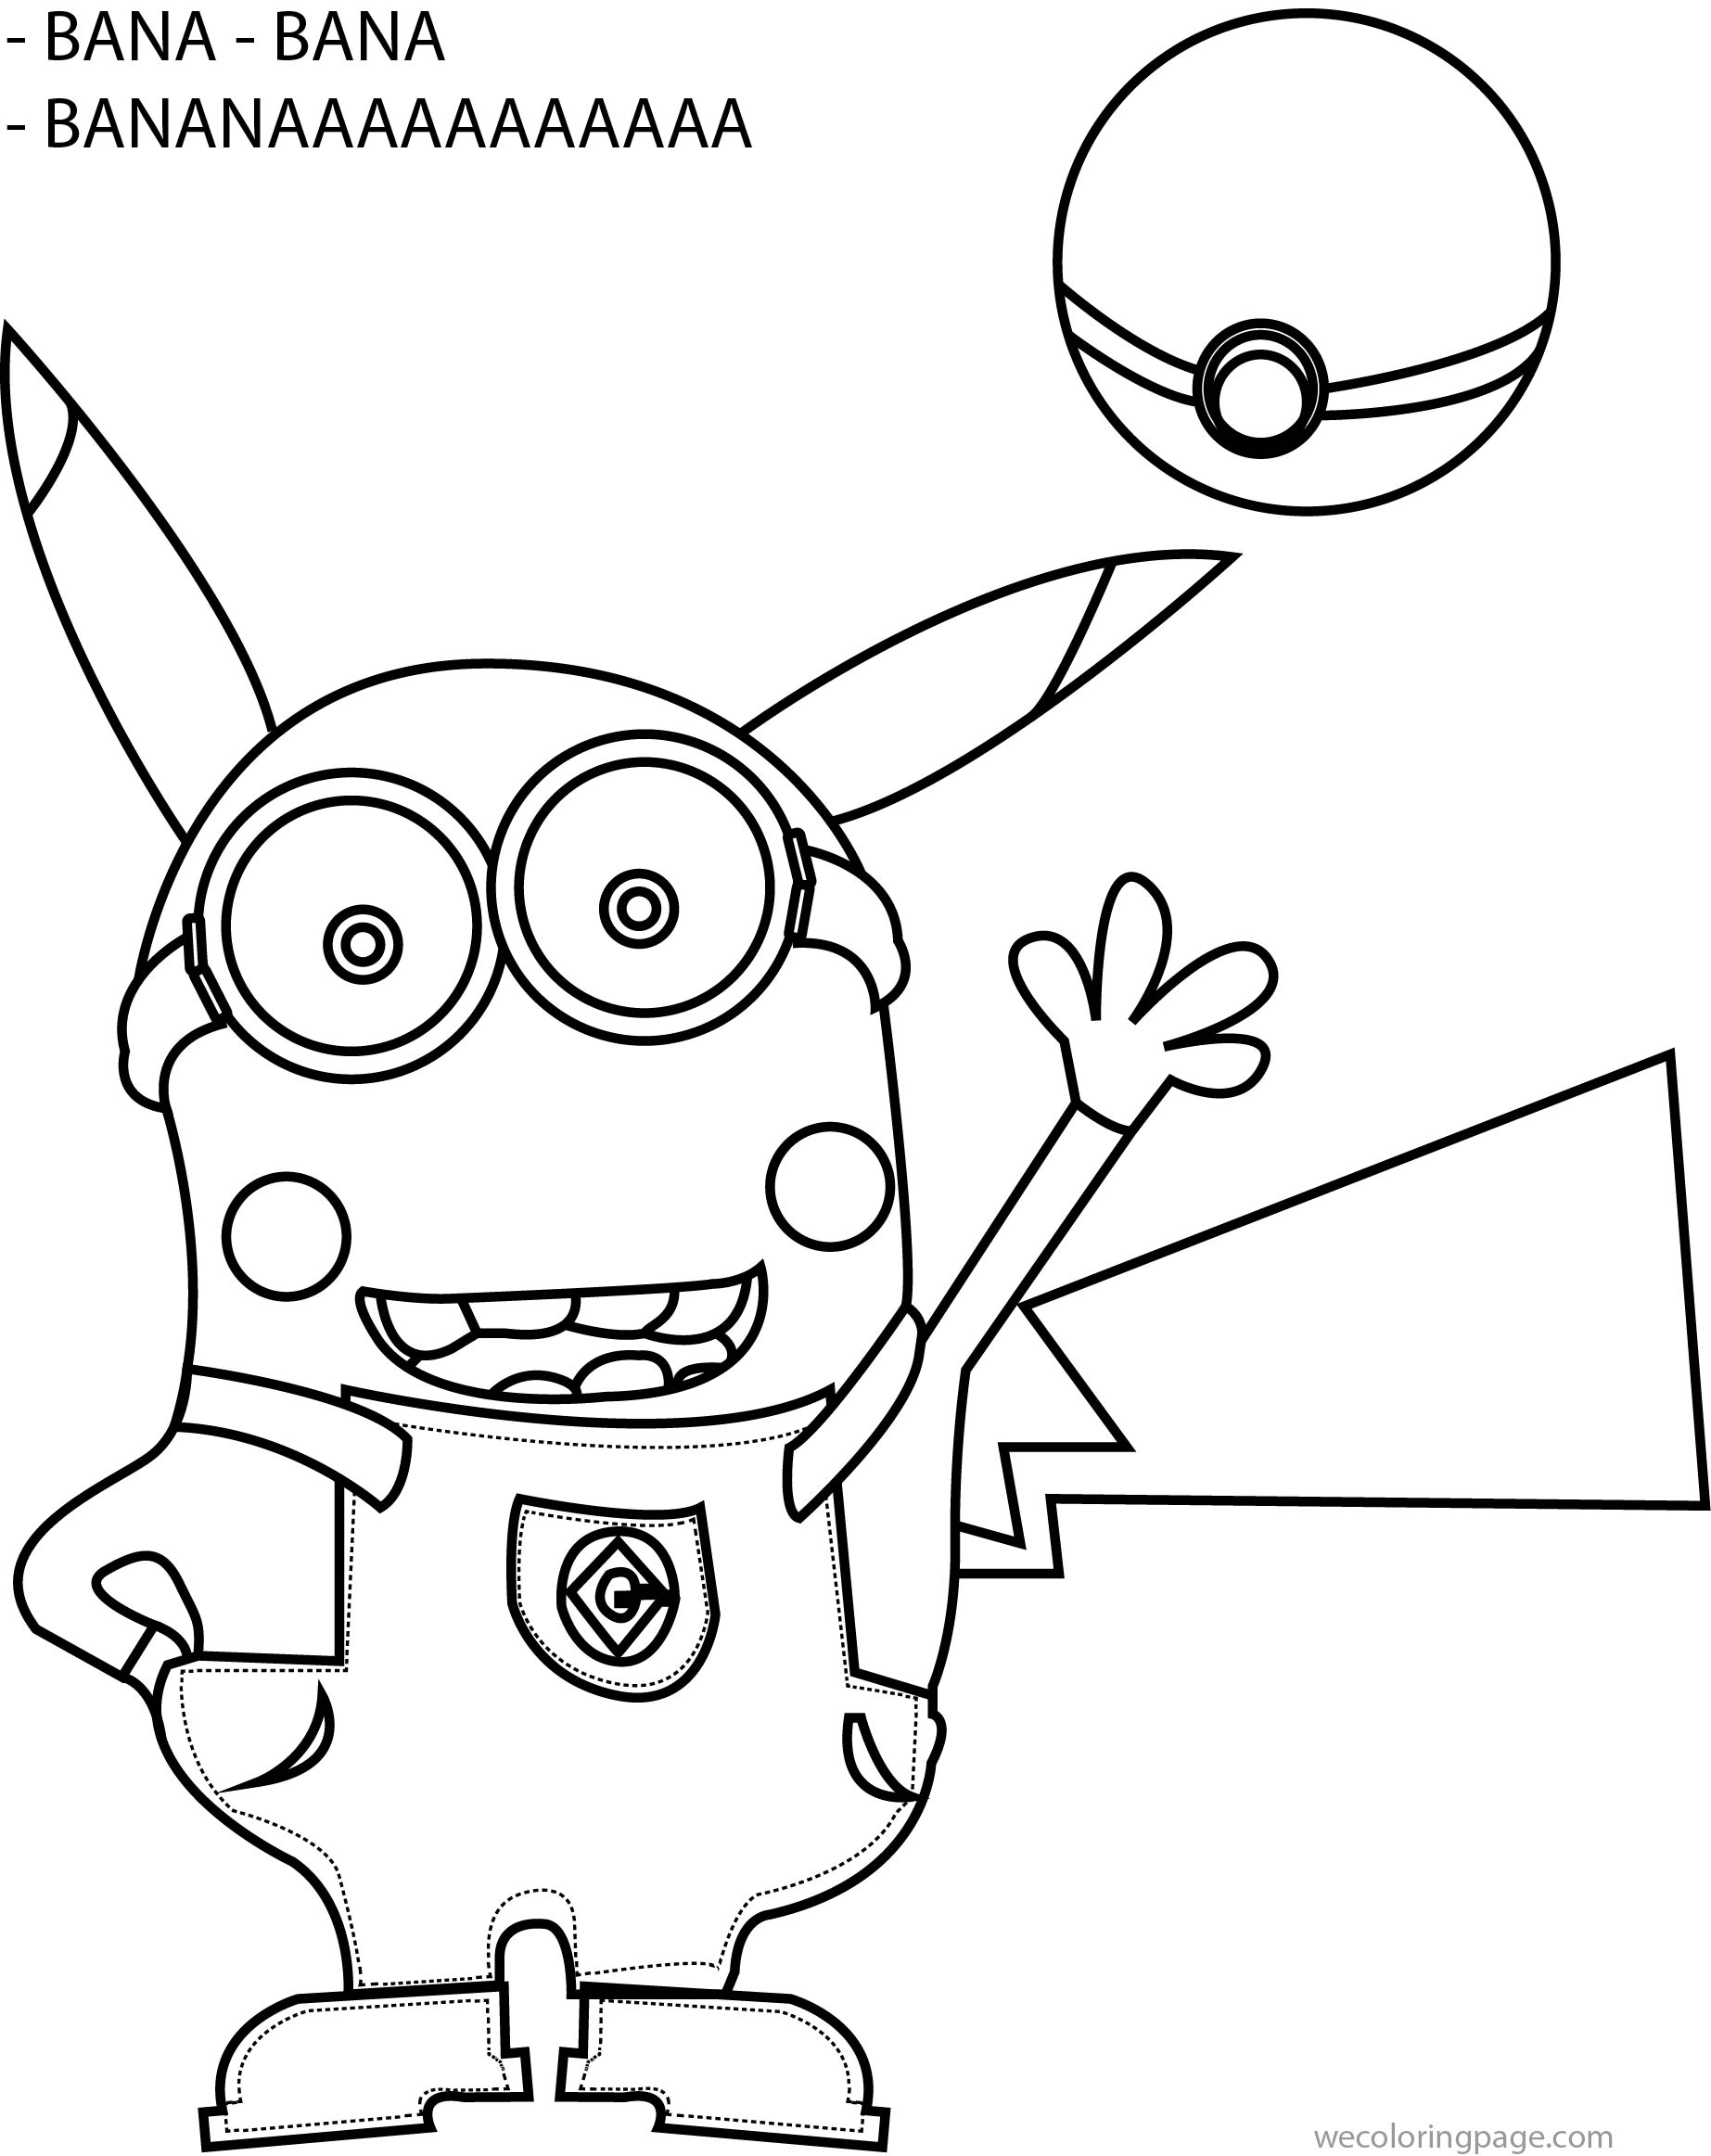 Minion Banana Coloring Pages Online Free Movie Sketch Coloring Page